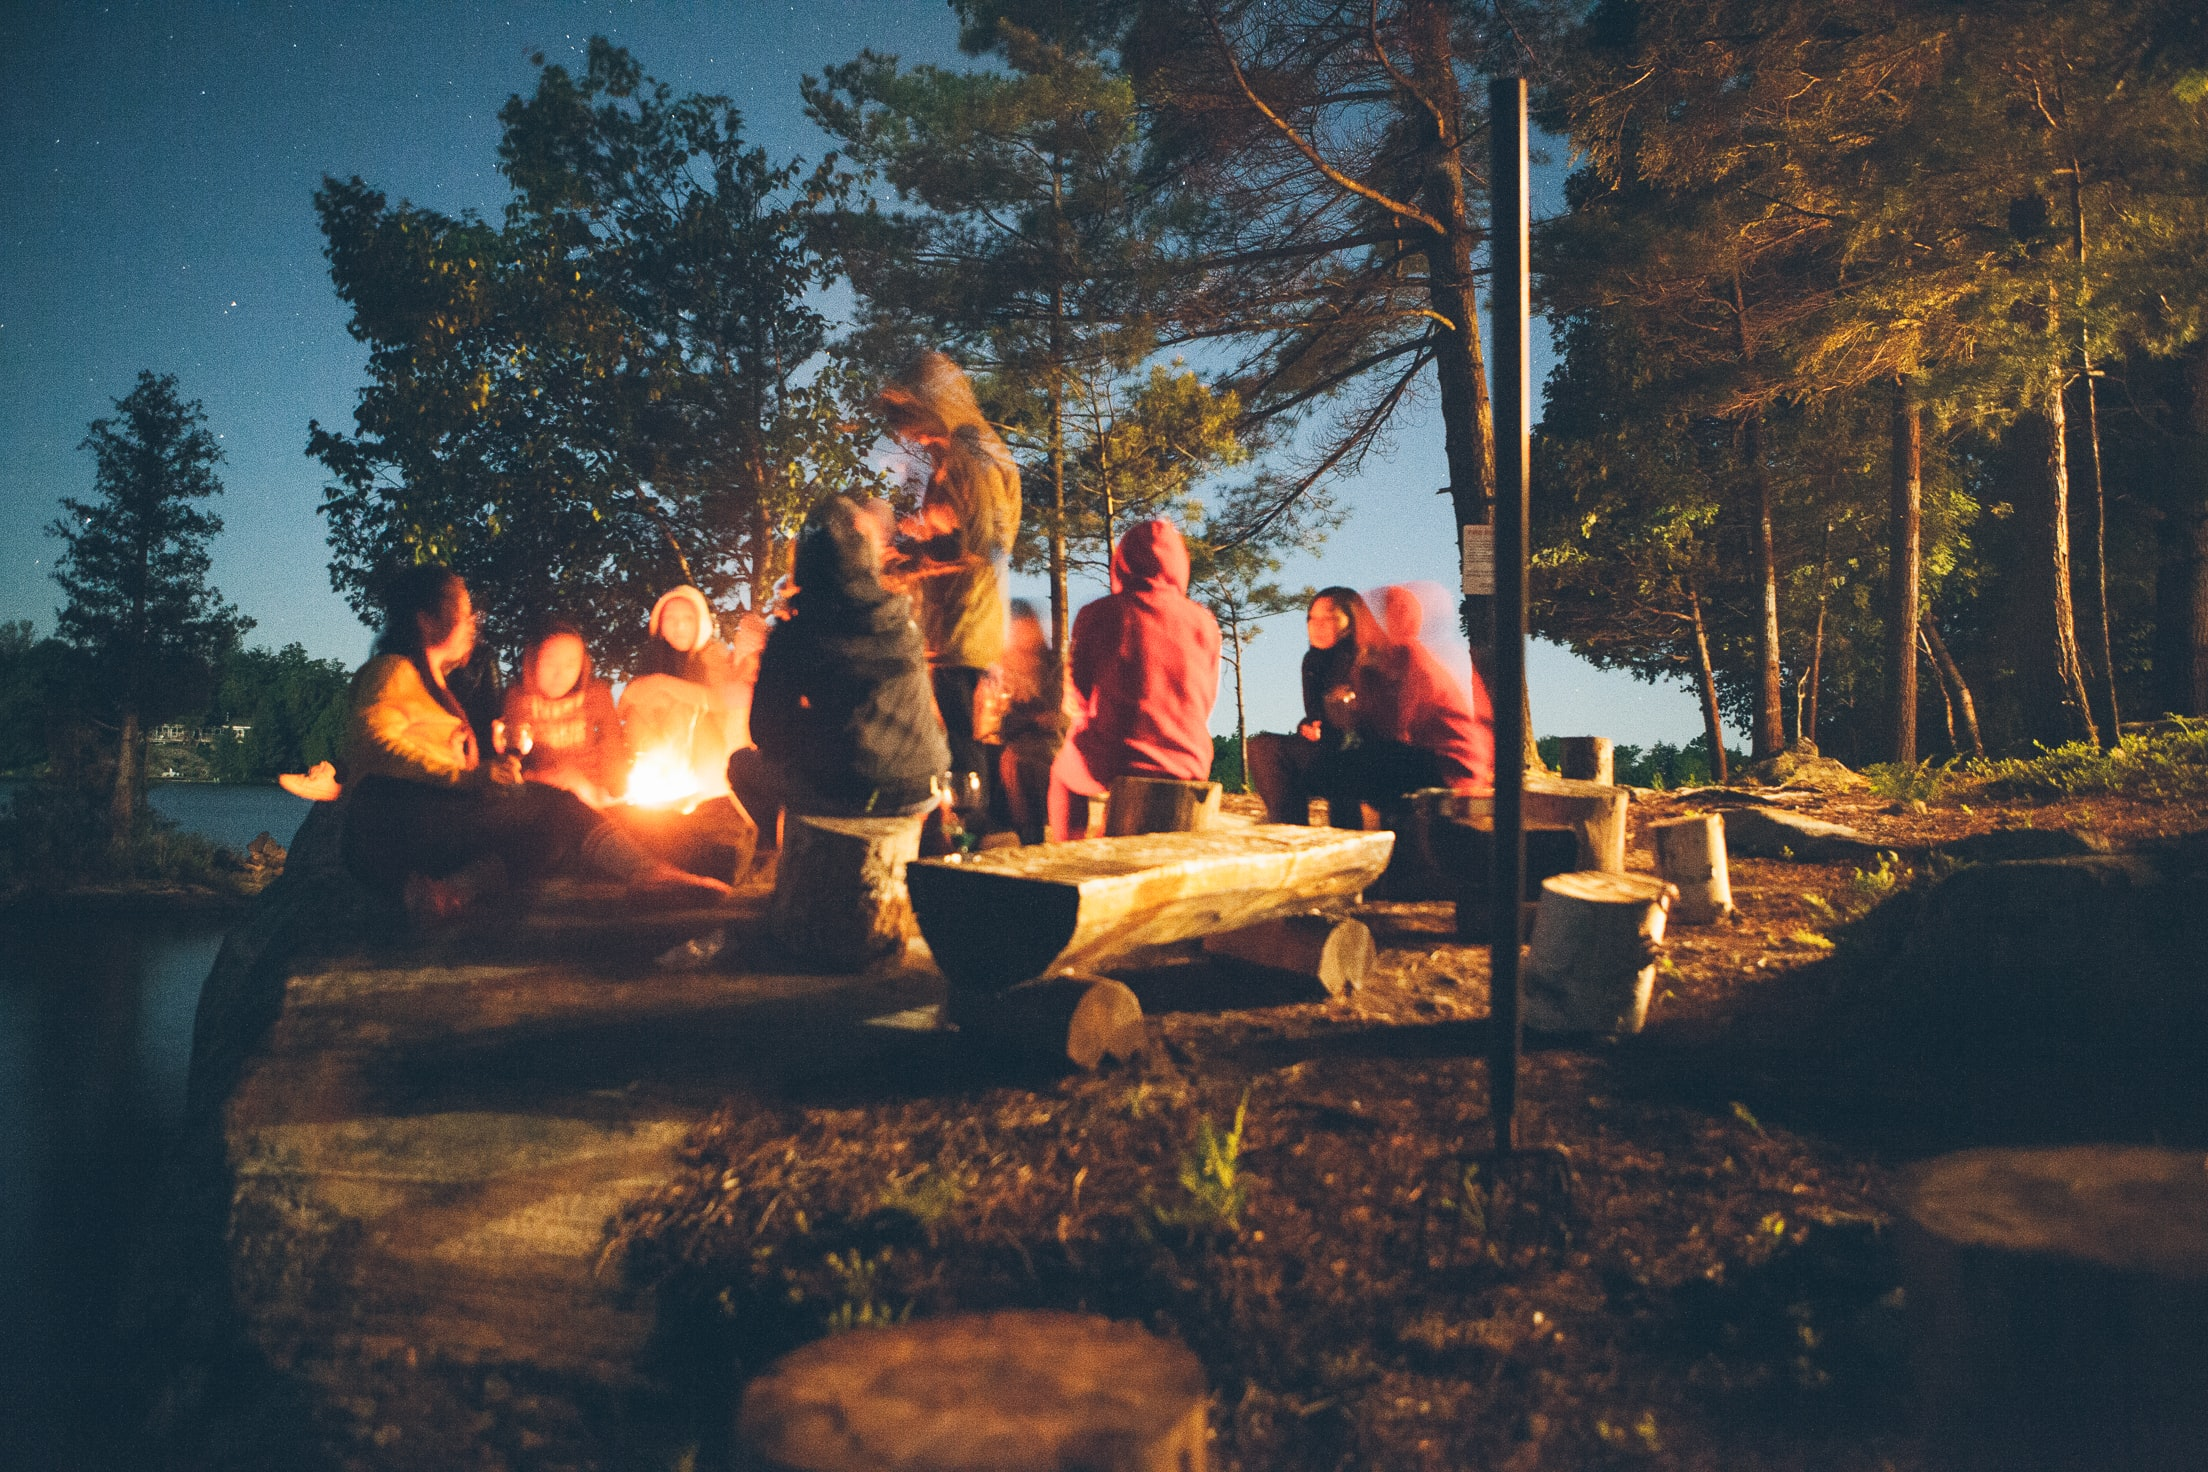 Campfire for BARC blog article on leaving no trace